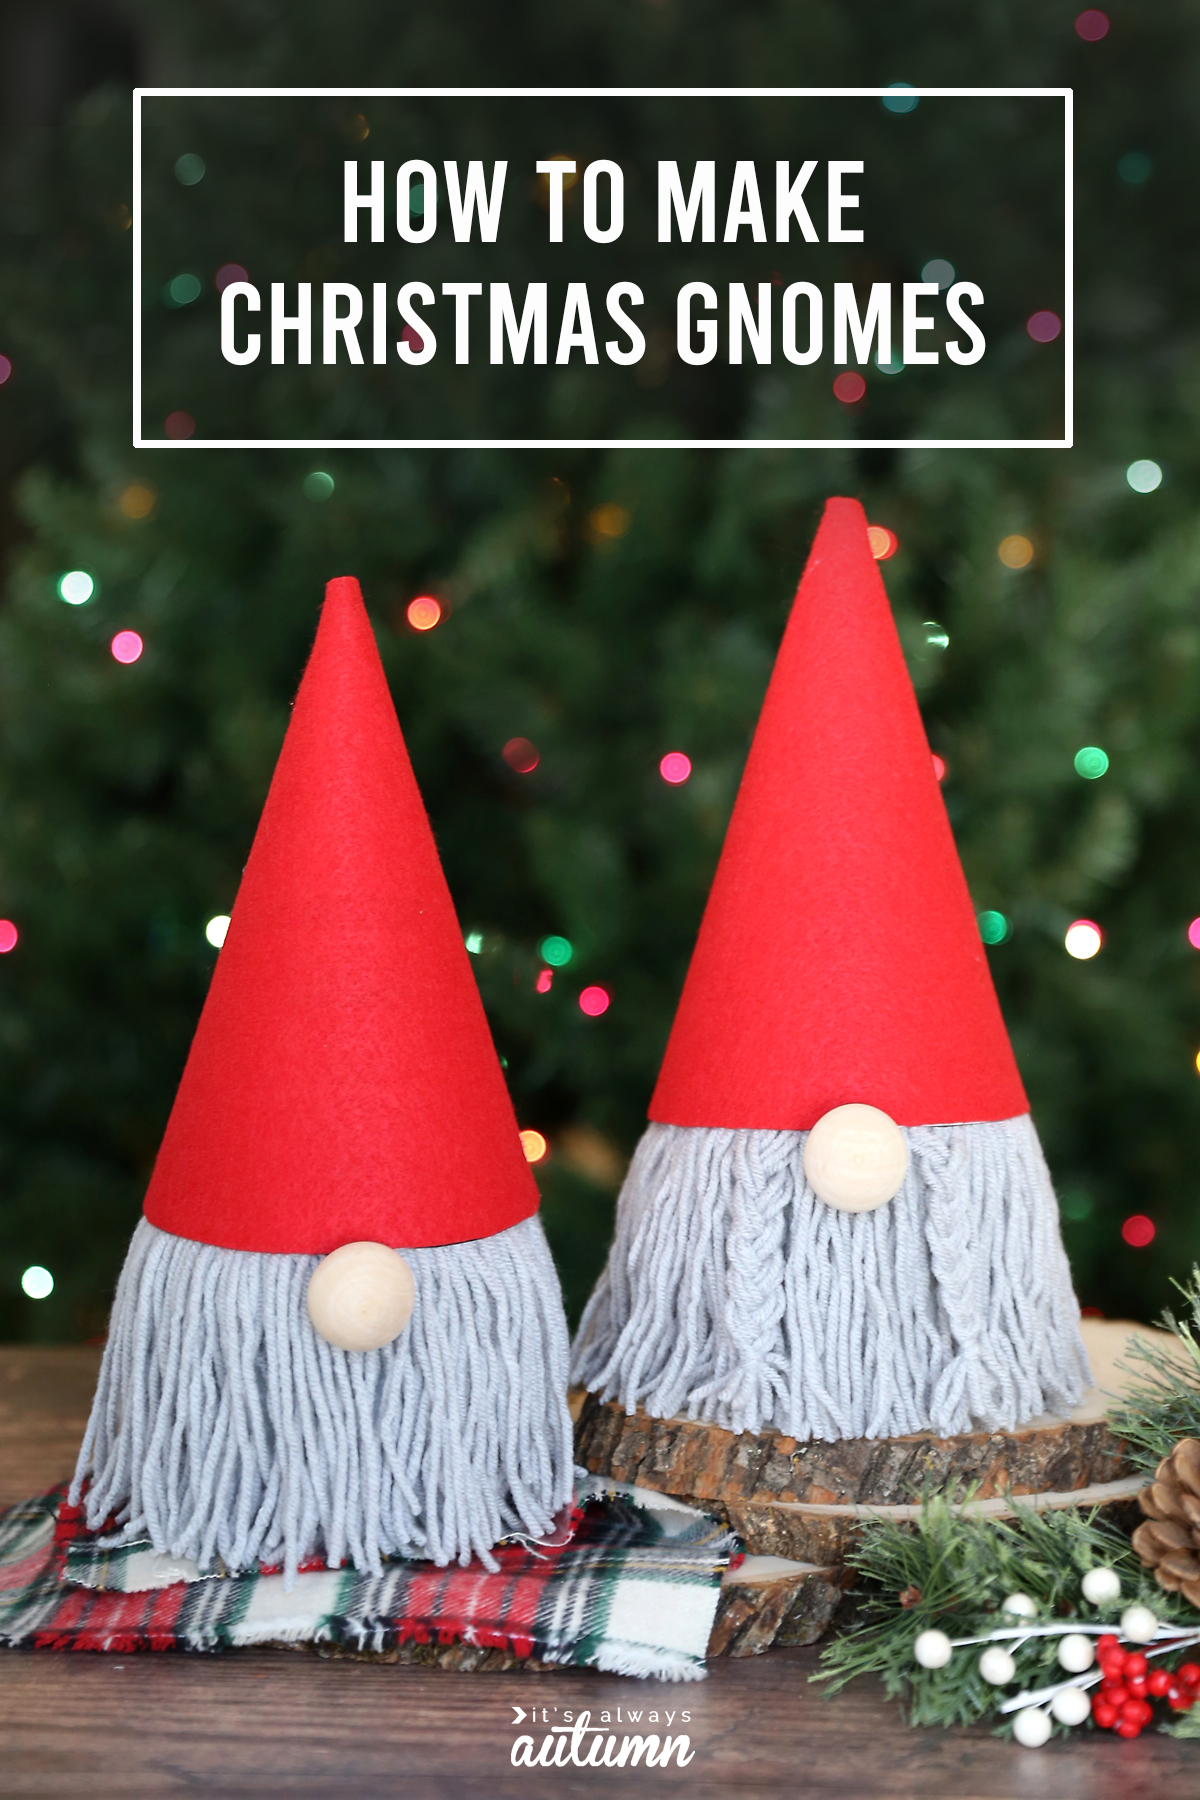 Christmas gnome craft made from toilet paper rolls